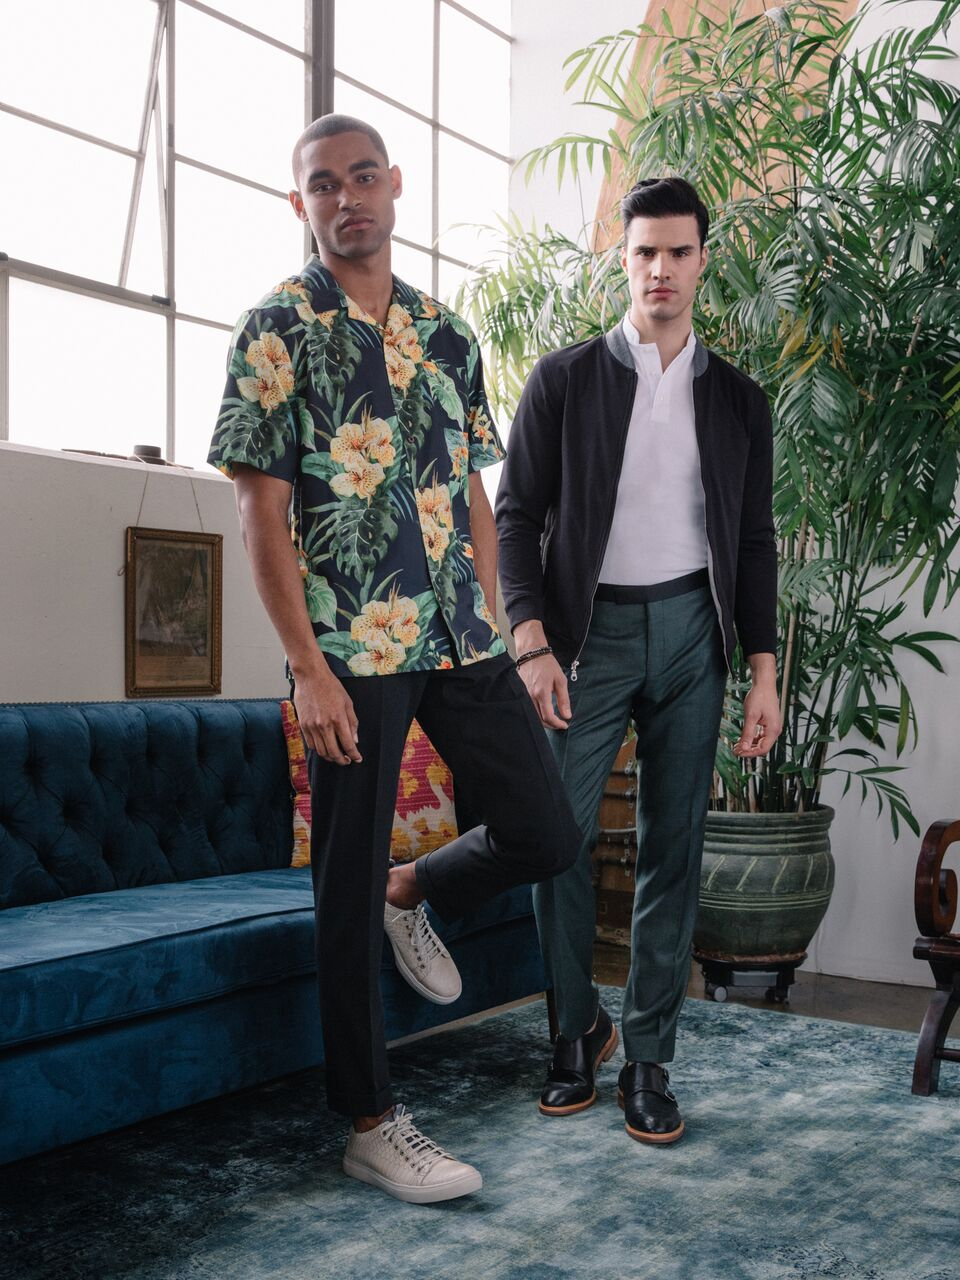 Model - Jason Baker (LA Models)  Made to Measure Shirt and Pants.  Model - Gil Soares (LA Models)  Knitwear Bomber Jacket and Polo Shirt. Made to Measure Trousers  Klein Epstein & Parker - TriBeCa (New York City)